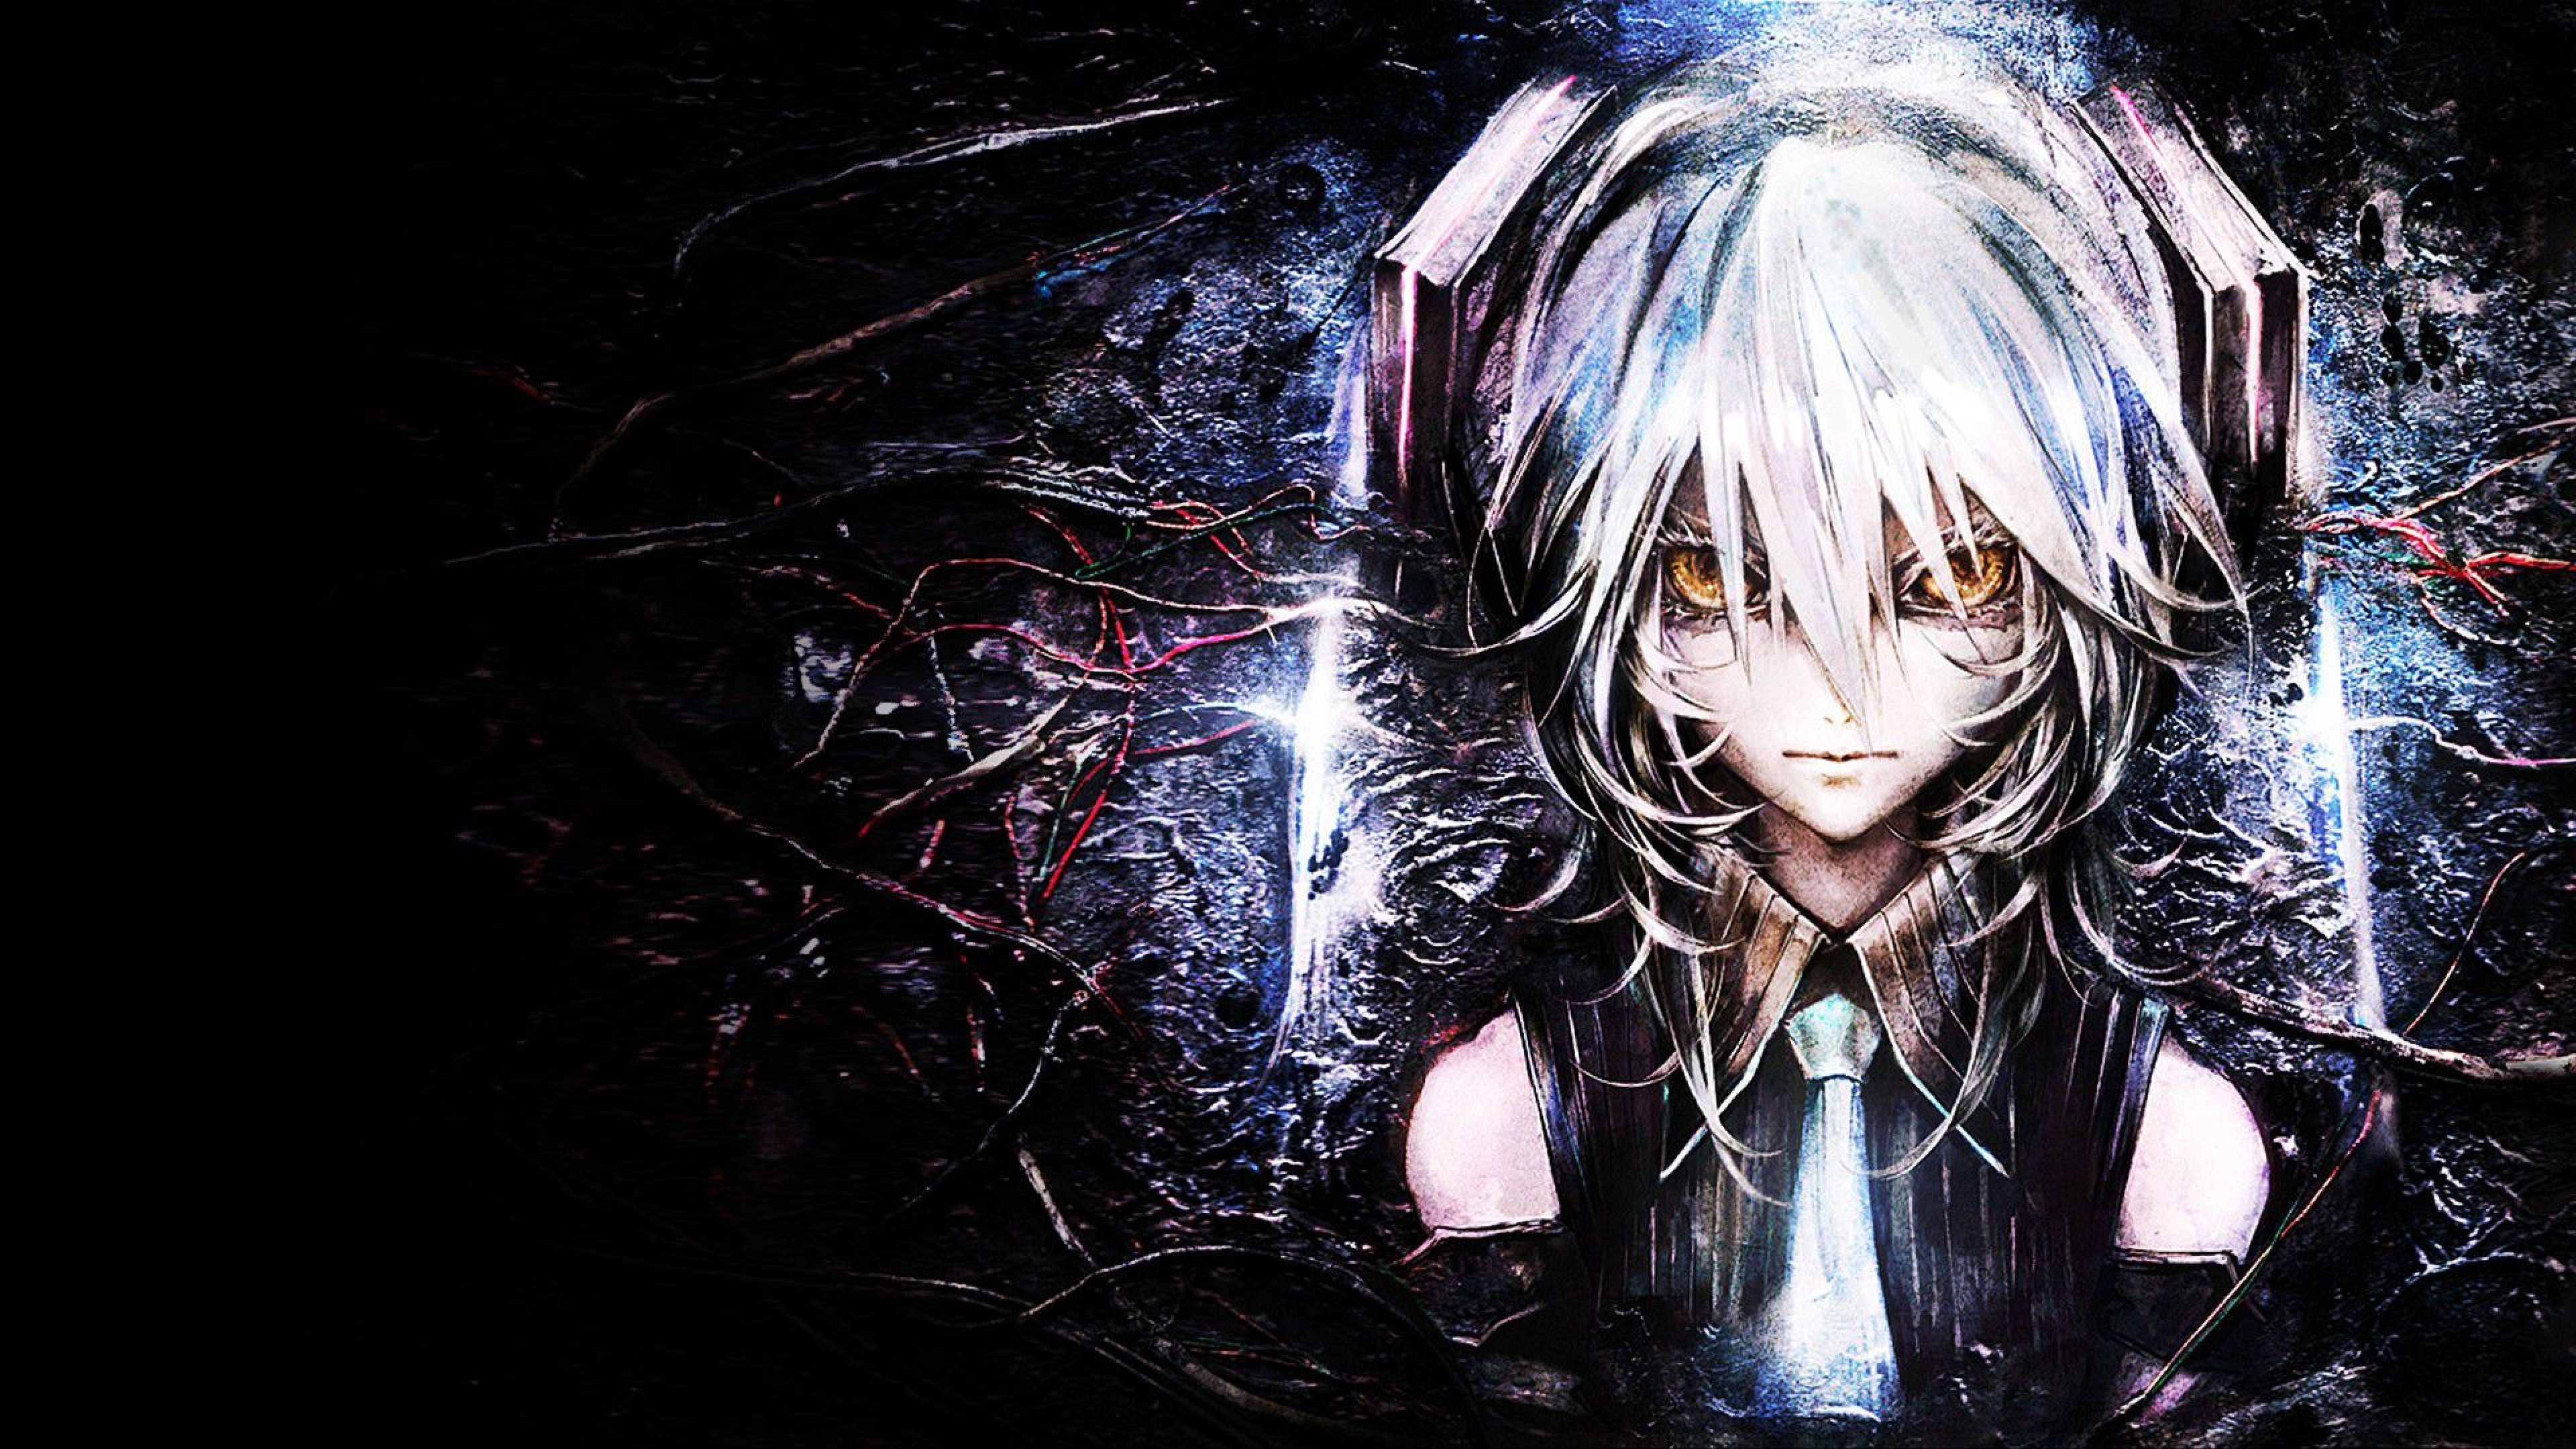 4k Ultra Hd Anime Wallpapers Top Free 4k Ultra Hd Anime Backgrounds Wallpaperaccess